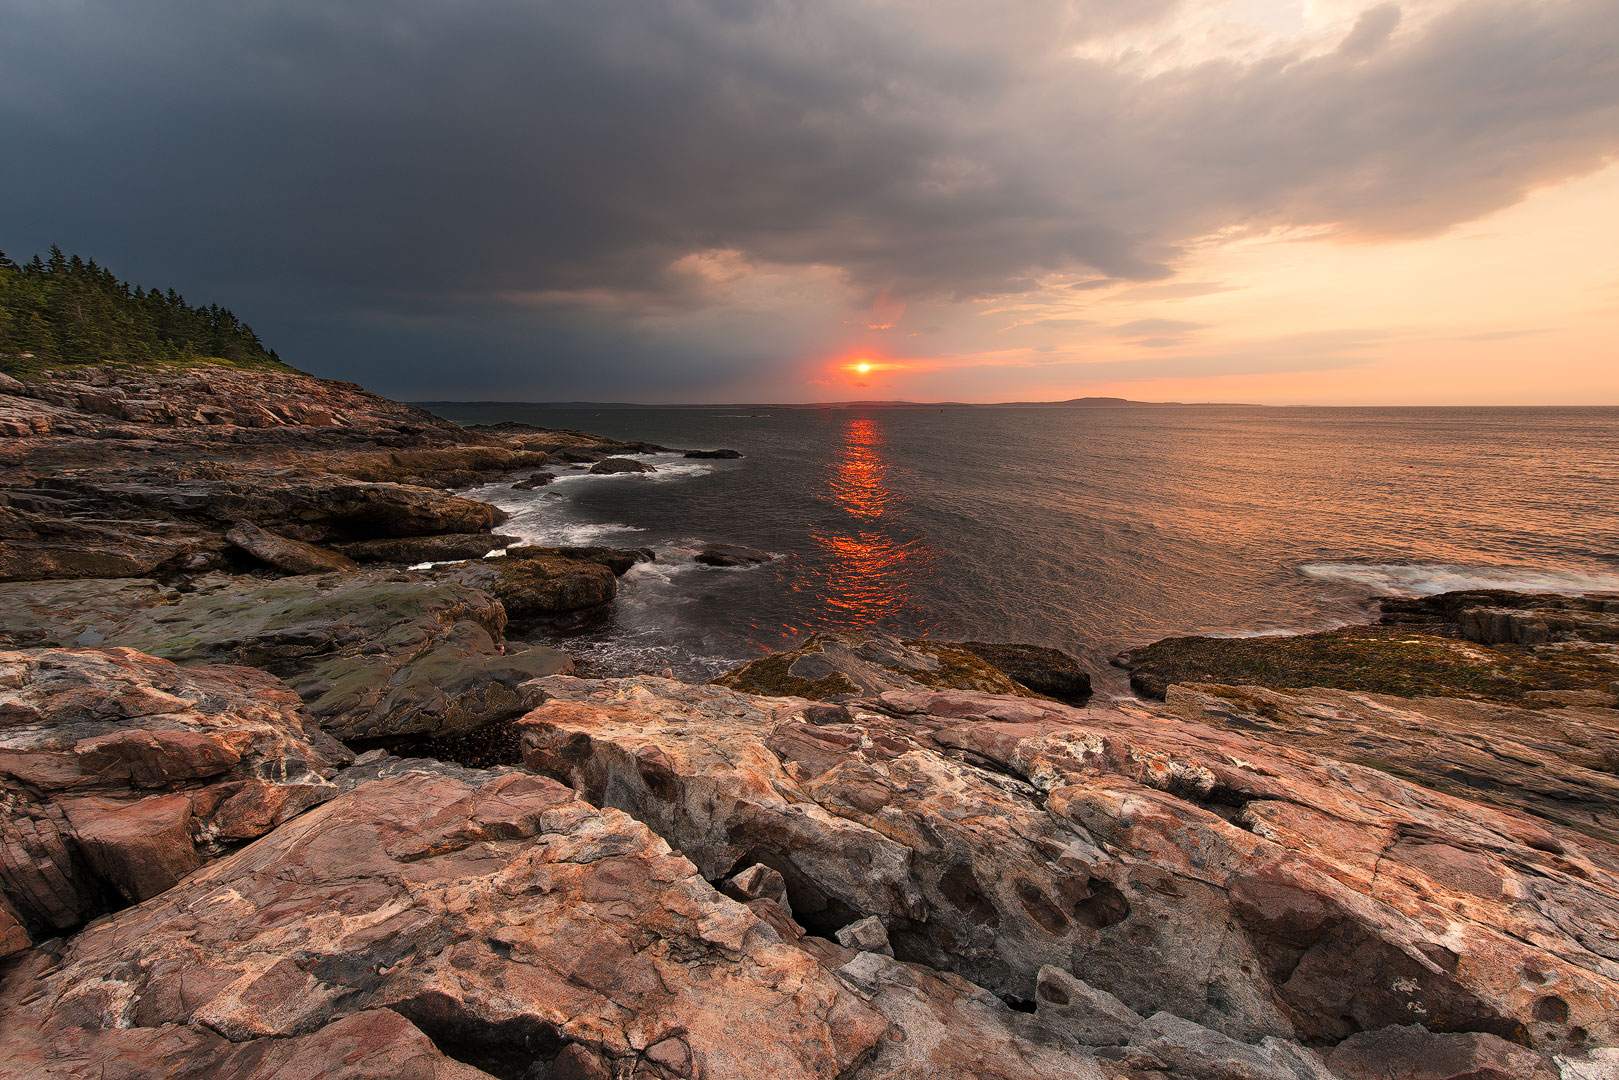 Atlantic, ocean, acadia, national, park, beach, sand, island, bernard chen, timescapes, Great Head Trail, rocky, coastline, photo